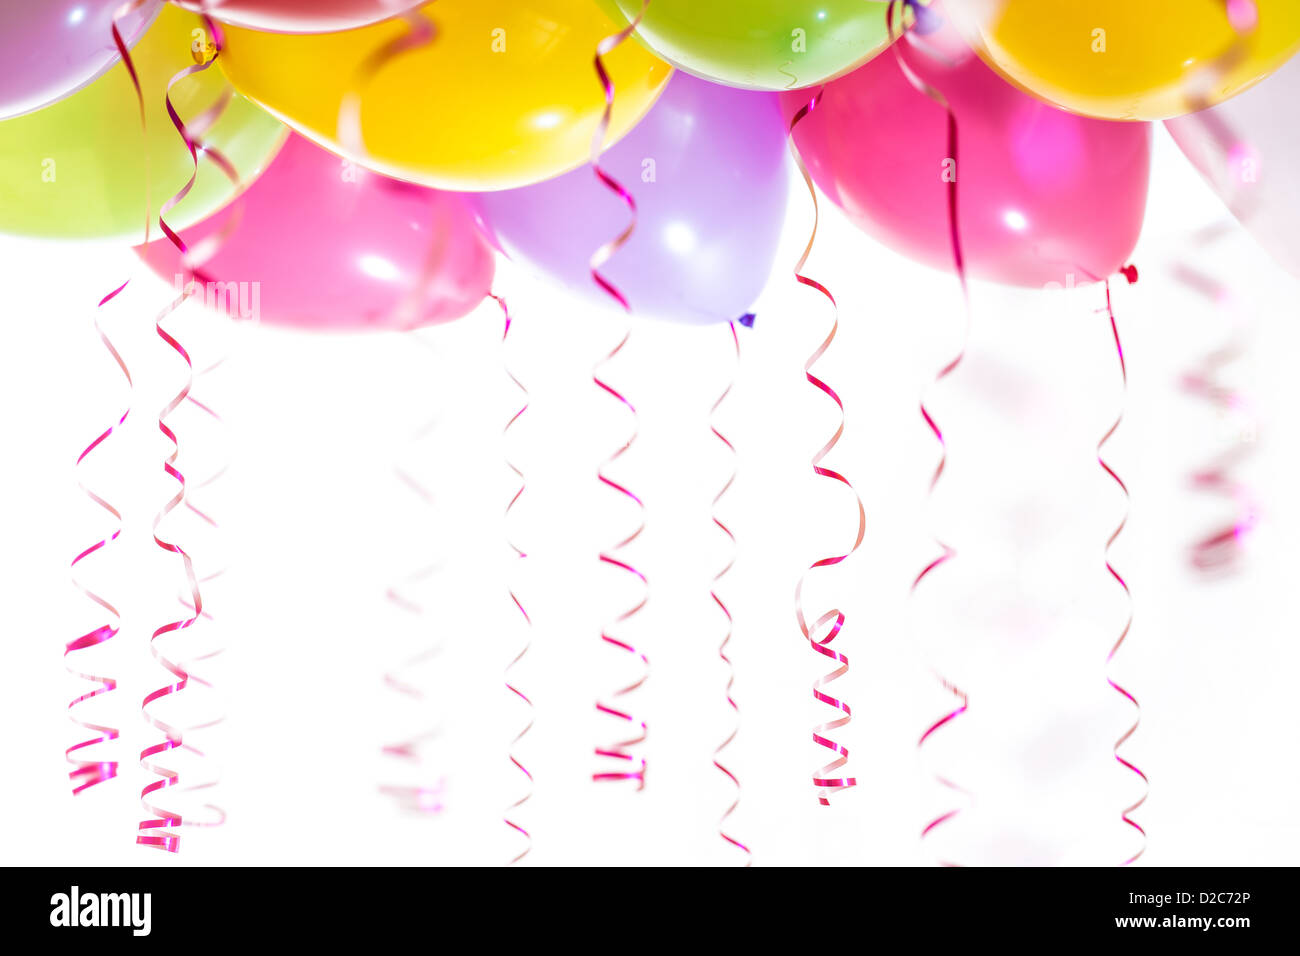 balloons with streamers for birthday party celebration isolated on white background - Stock Image